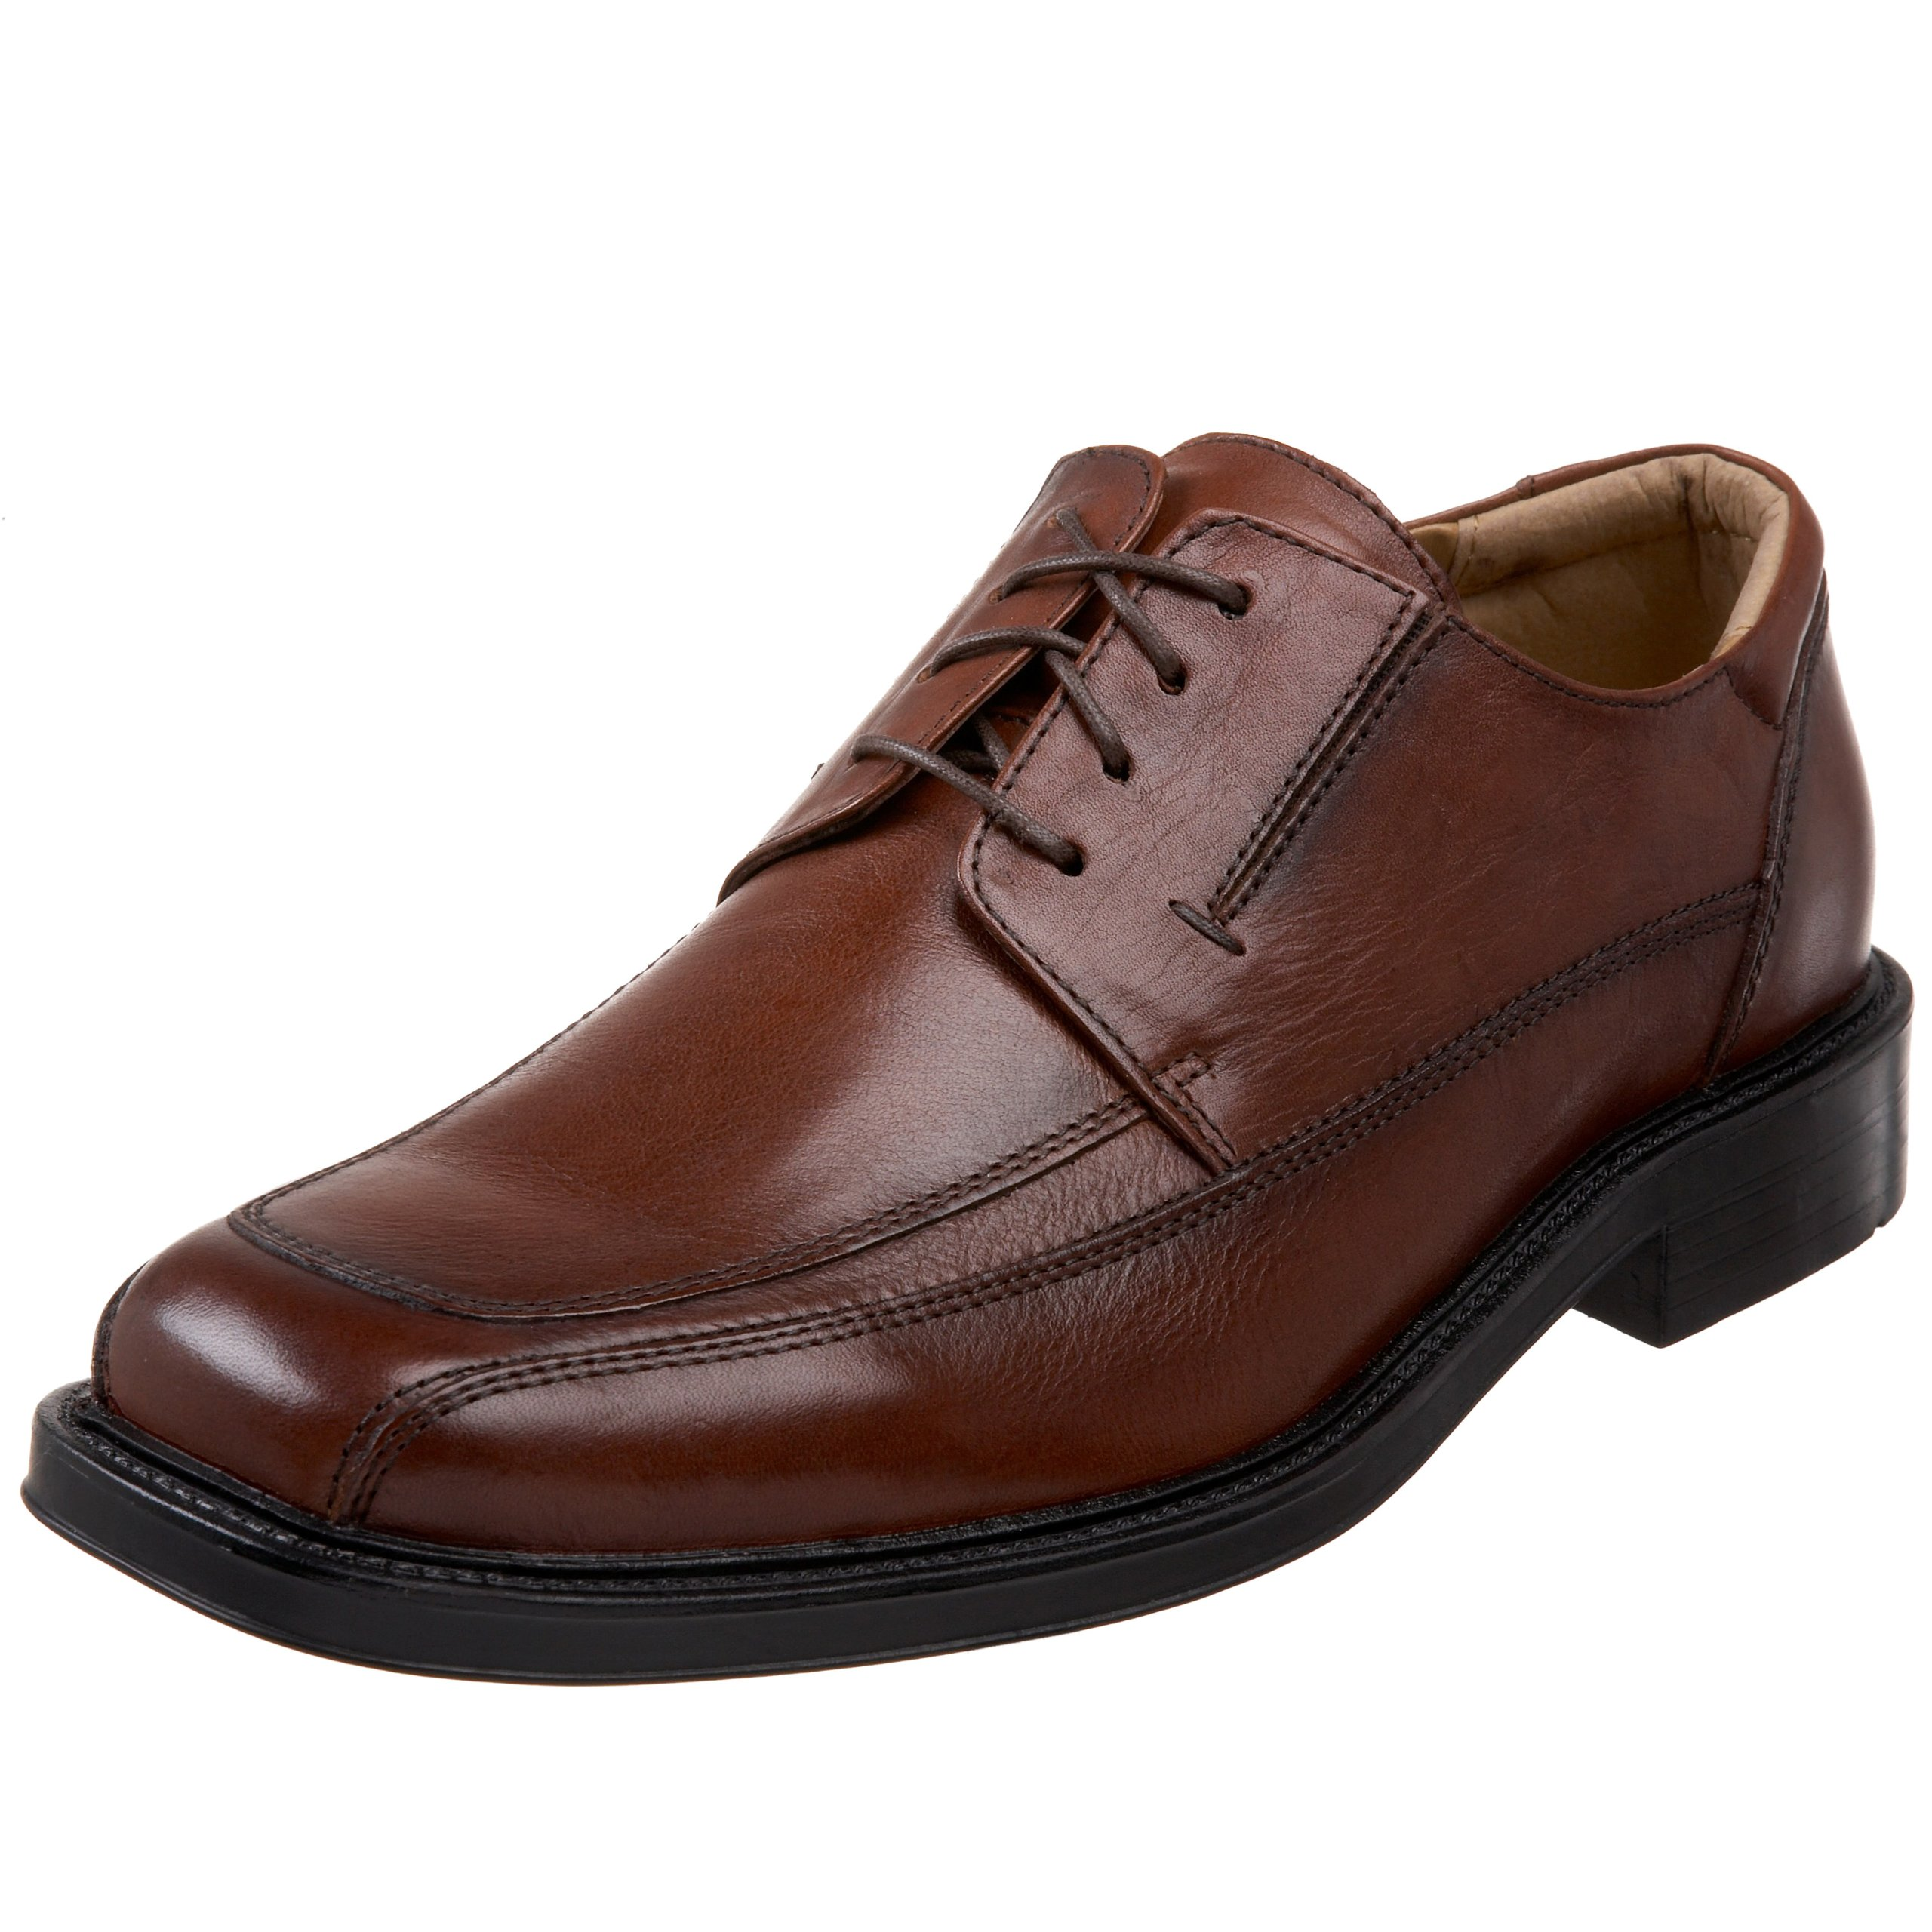 Dockers Men's Perspective Moc Run Off Toe Oxford